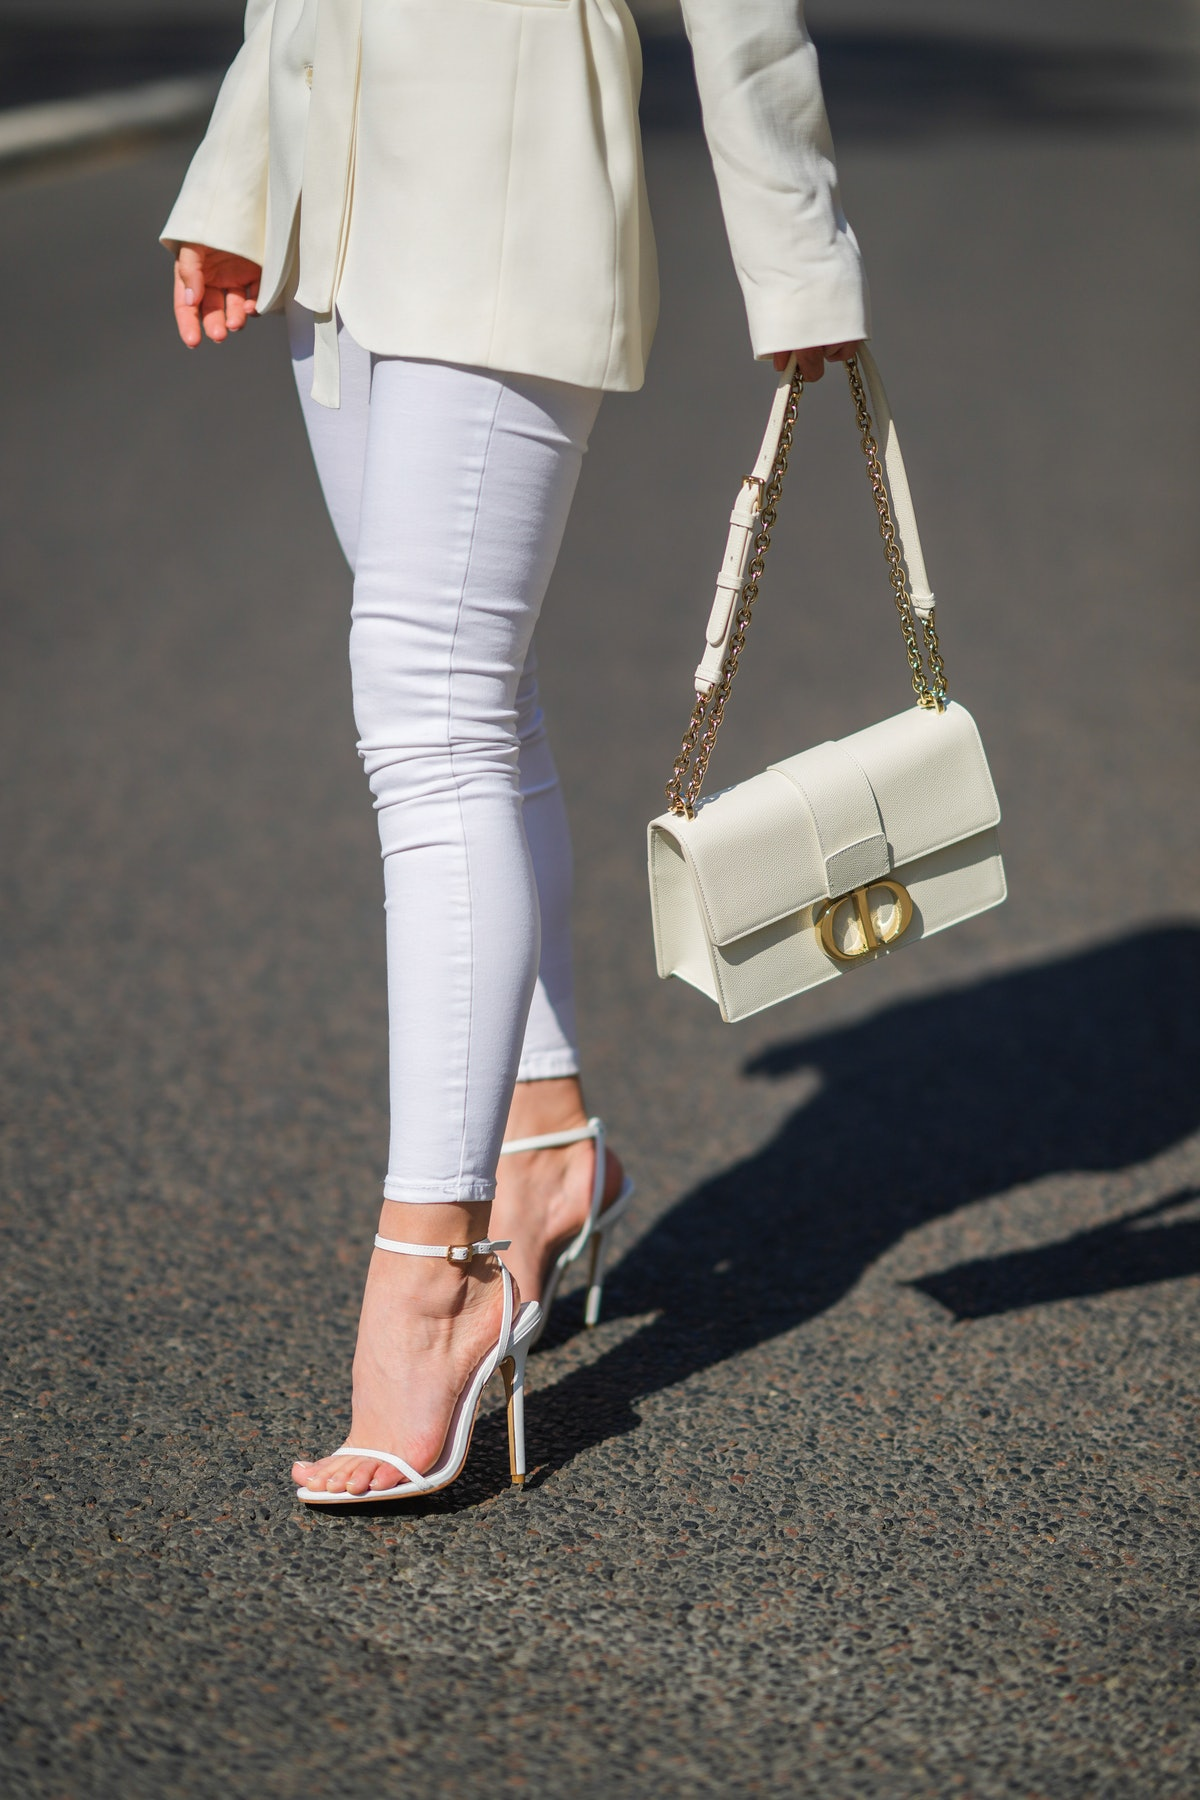 A person wearing white, skinny jeans.